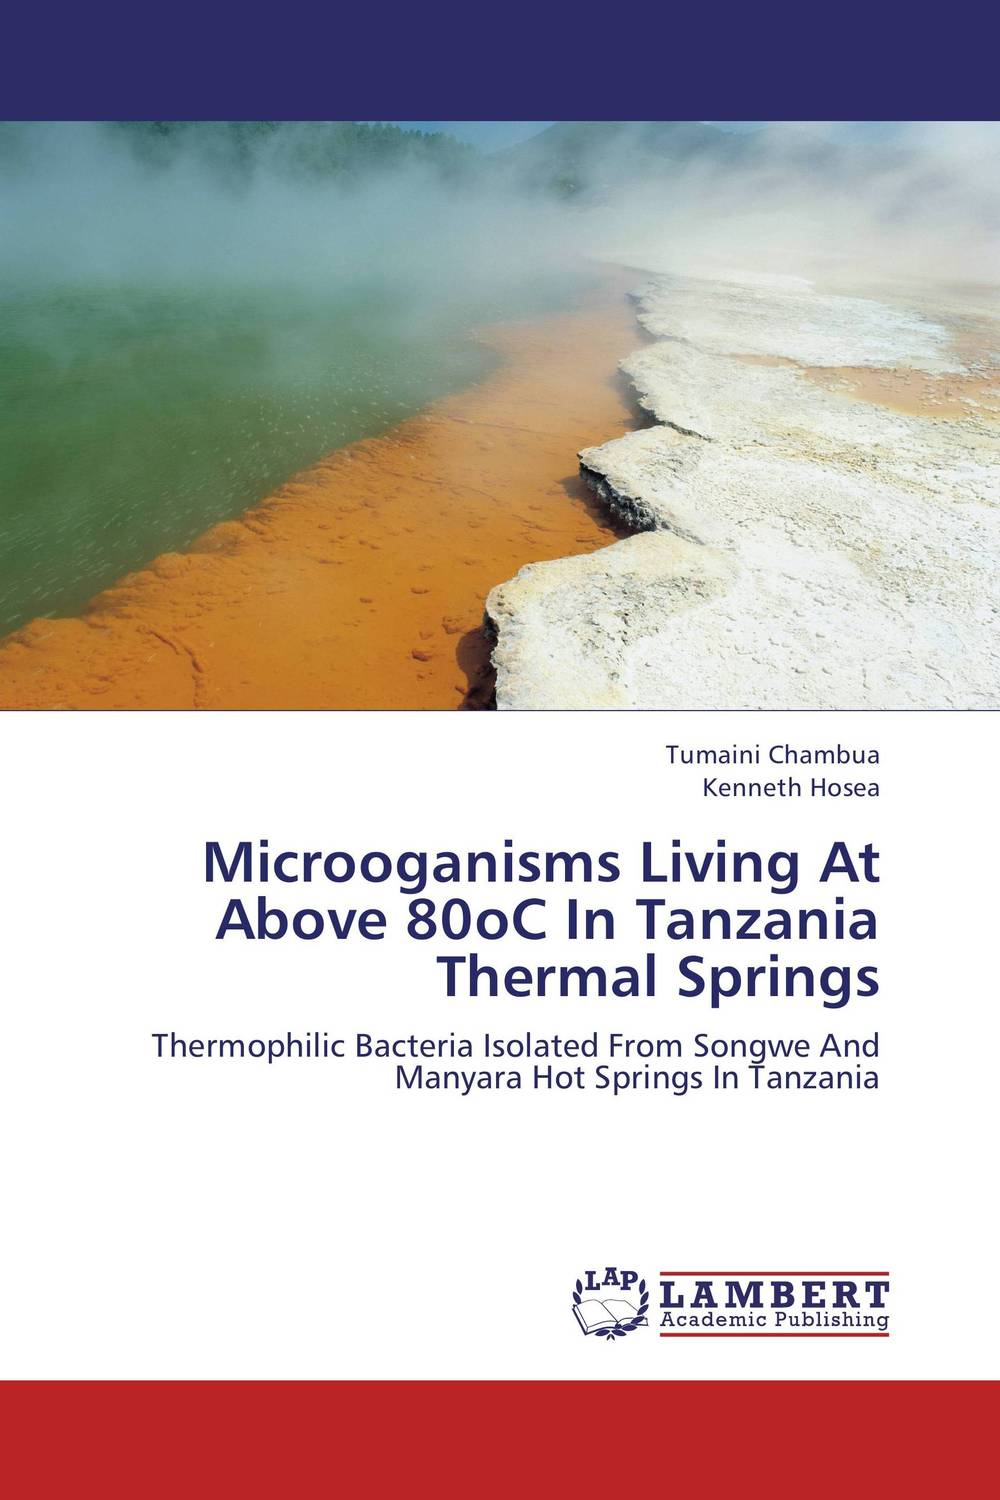 Microoganisms Living At Above 80oC In Tanzania Thermal Springs review of genus cotugnia diamare from maharashtra